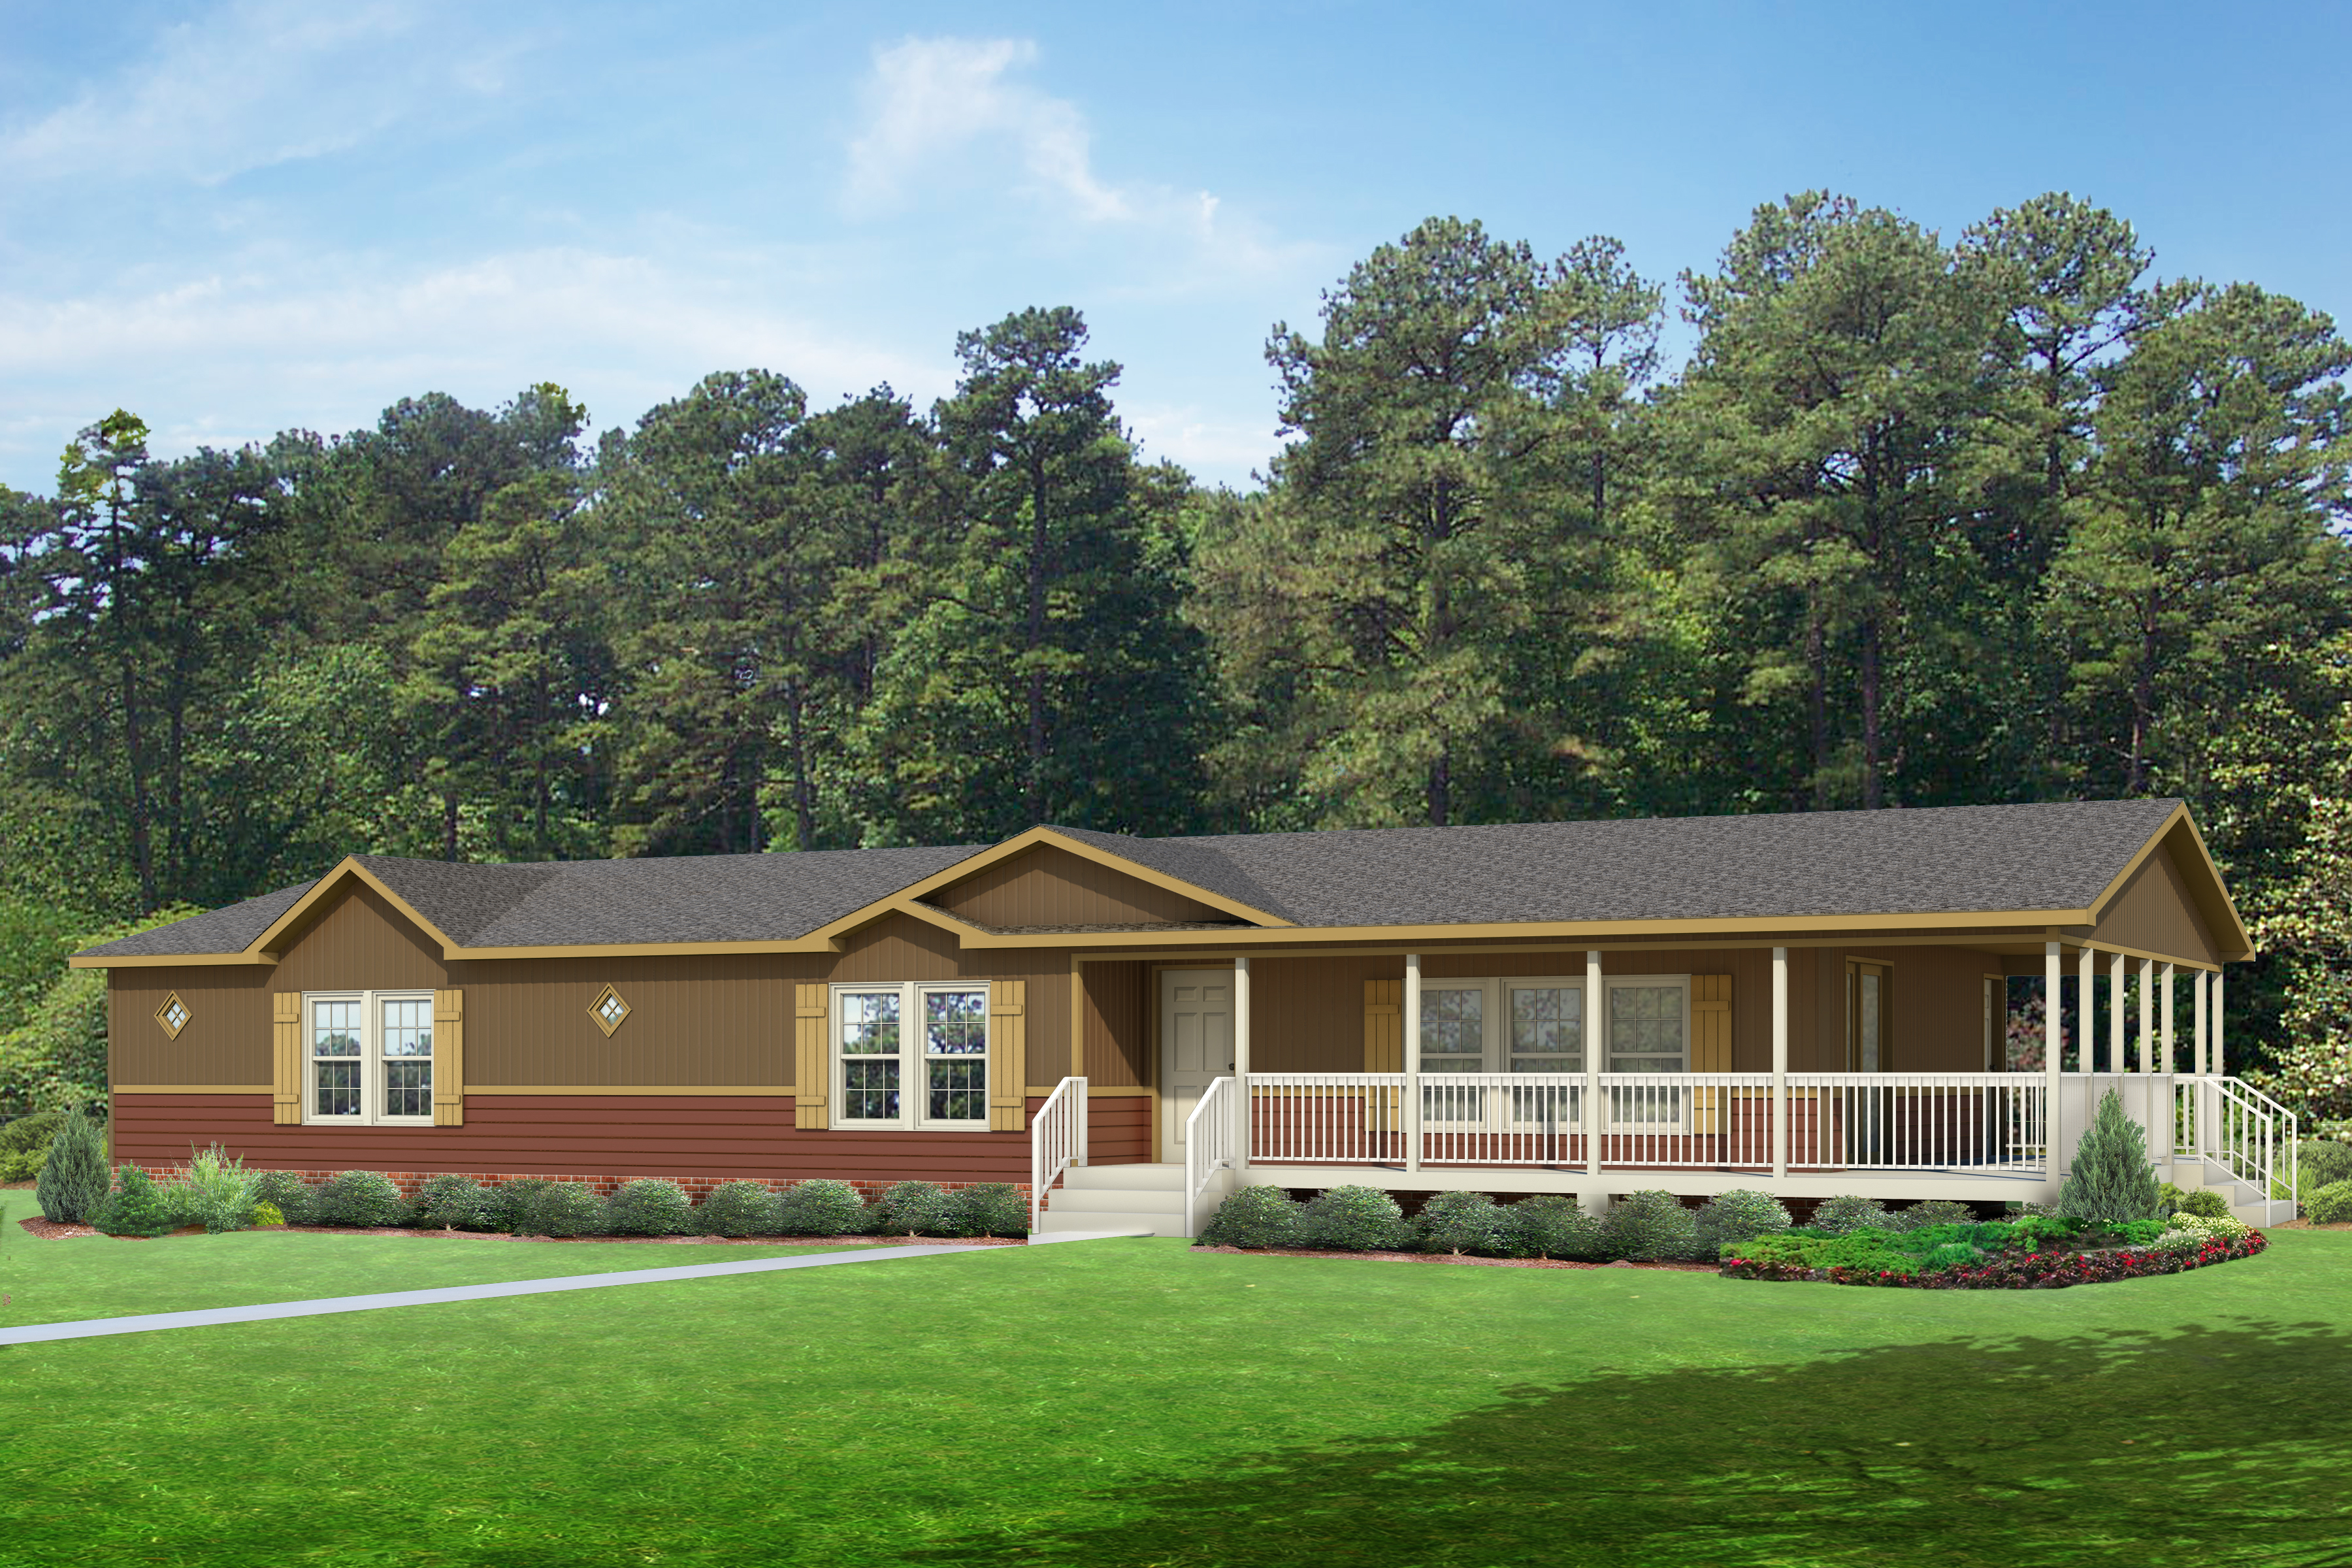 Clayton homes in covington la 985 892 5 for House plans covington la